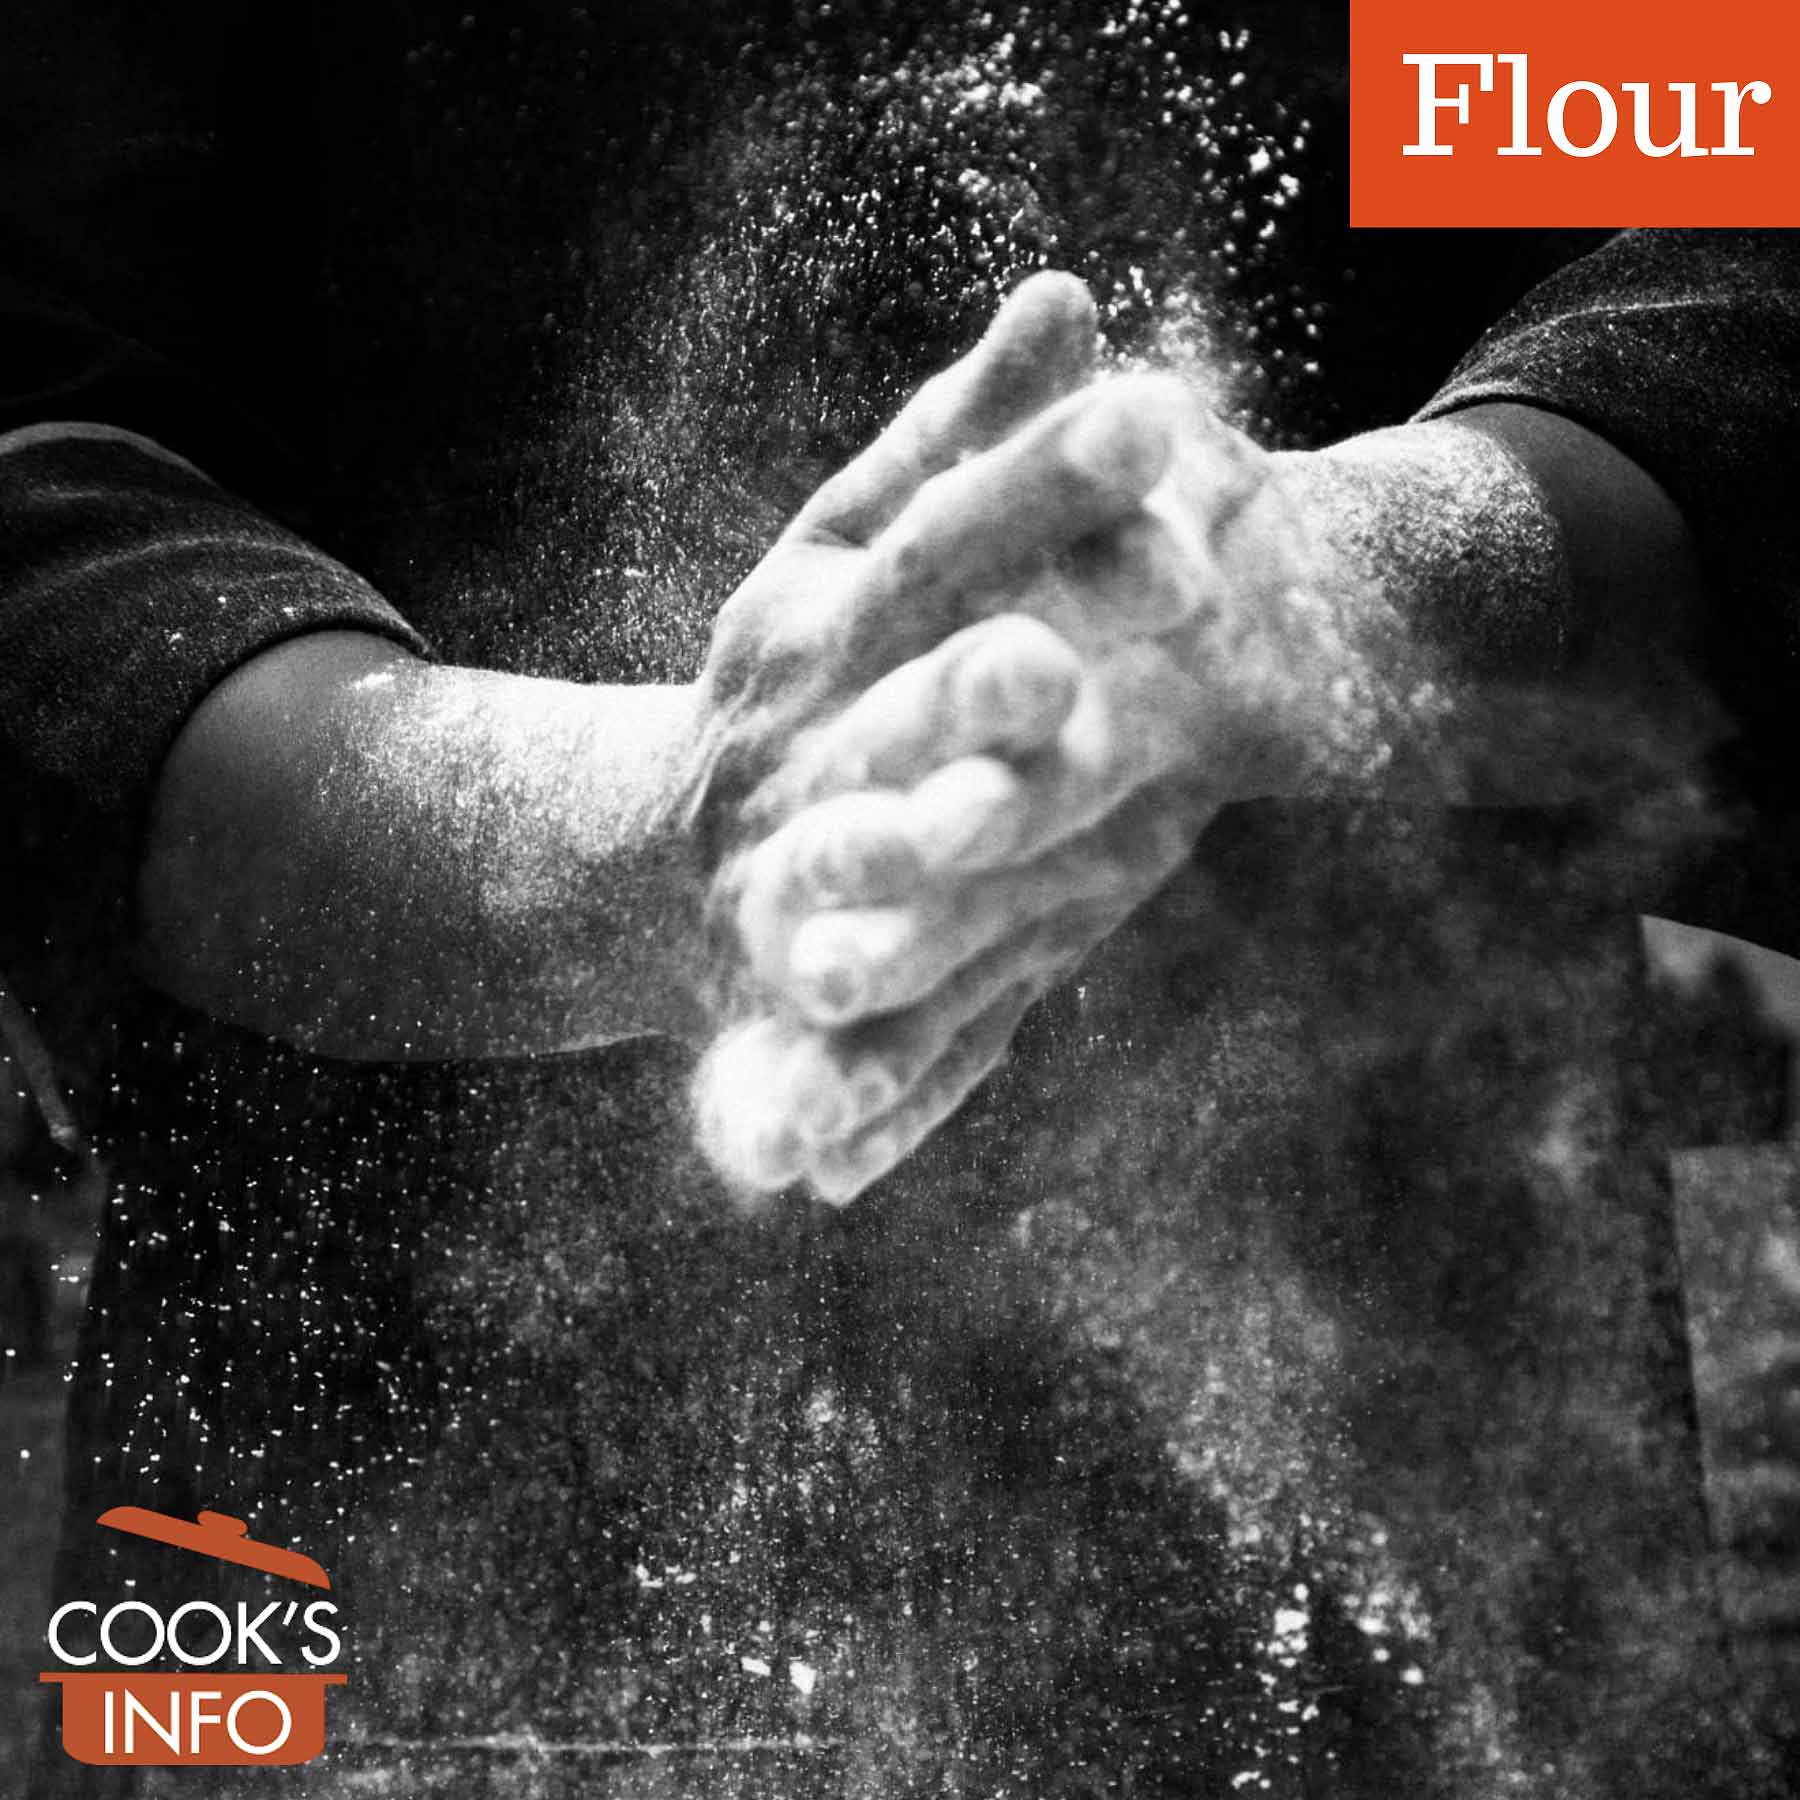 Hands with flour in air